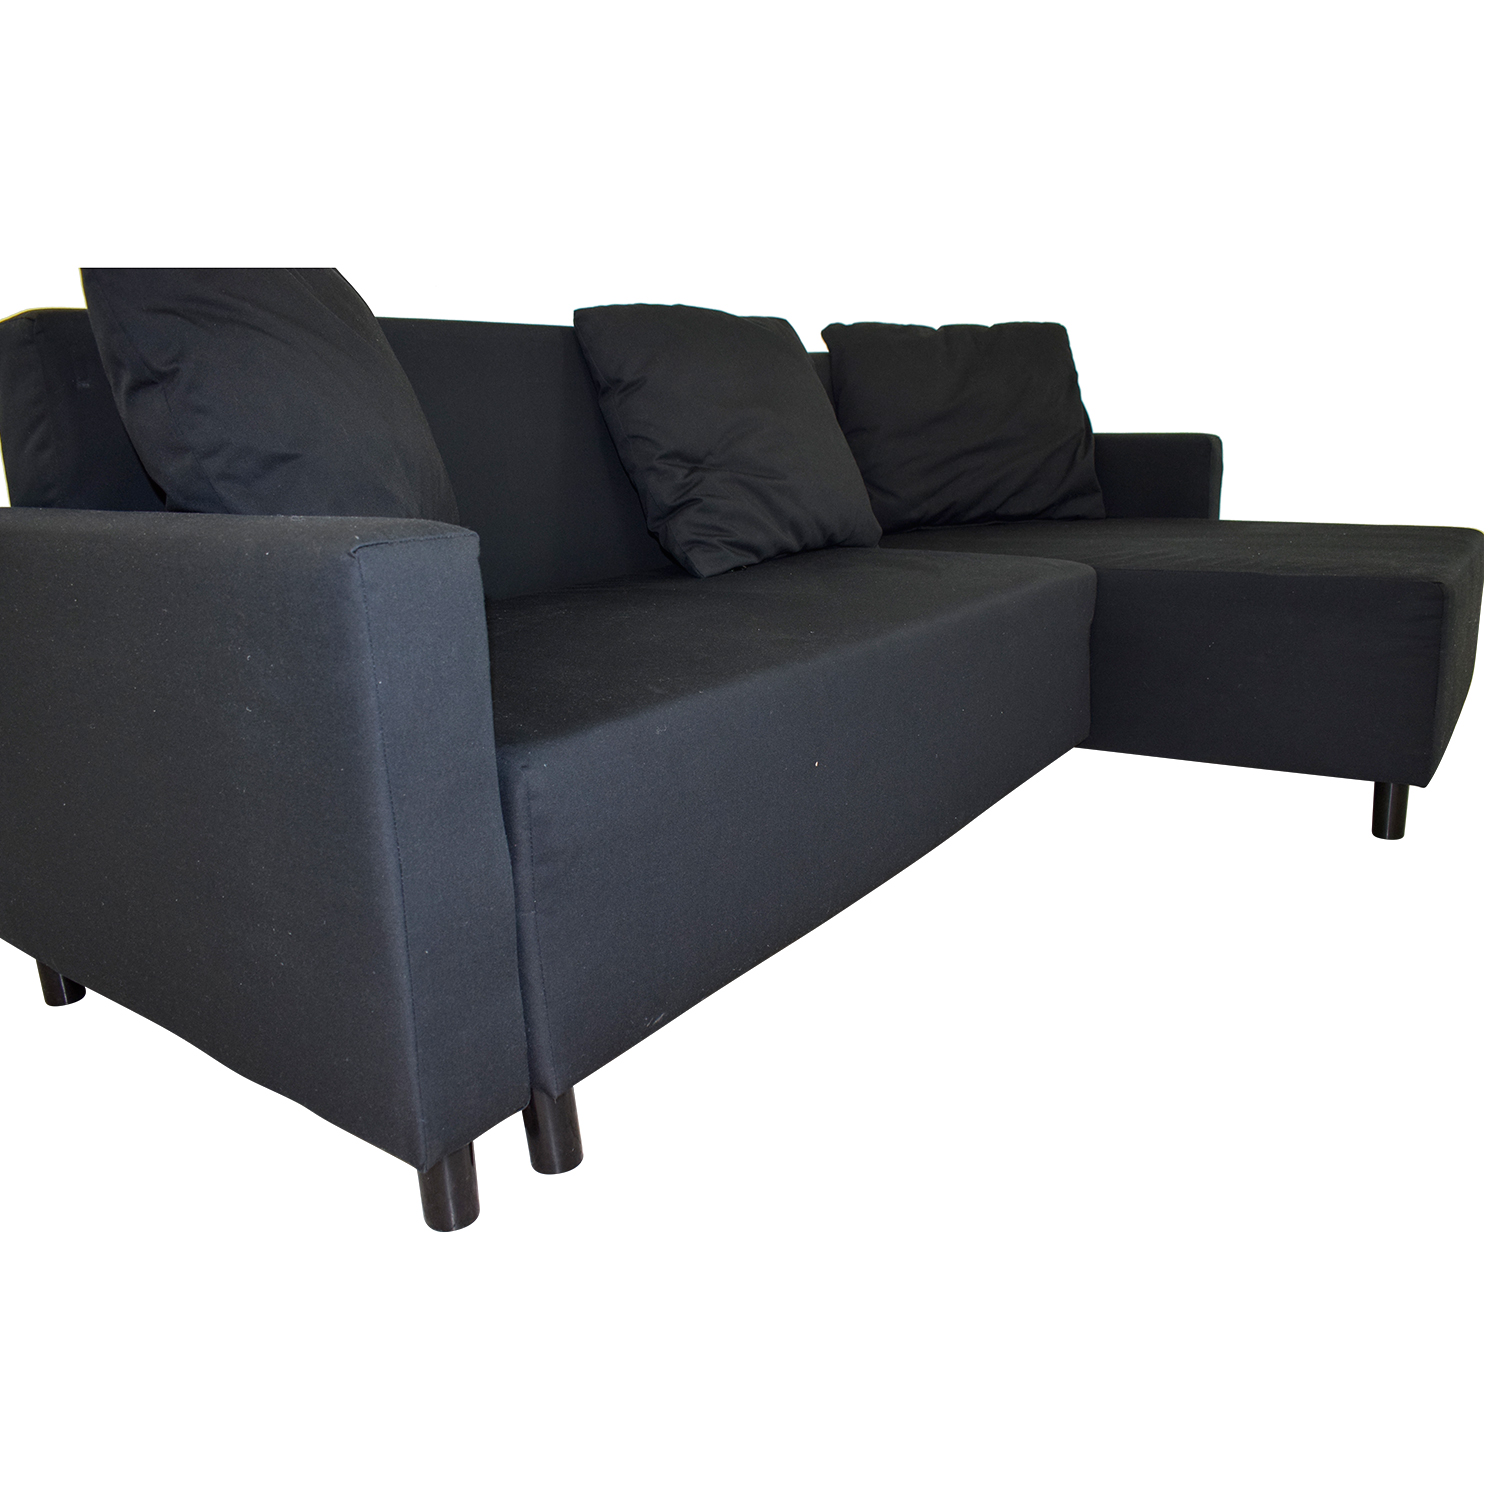 Excellent 31 Off Ikea Ikea Black Sleeper Chaise Sectional With Storage Sofas Onthecornerstone Fun Painted Chair Ideas Images Onthecornerstoneorg